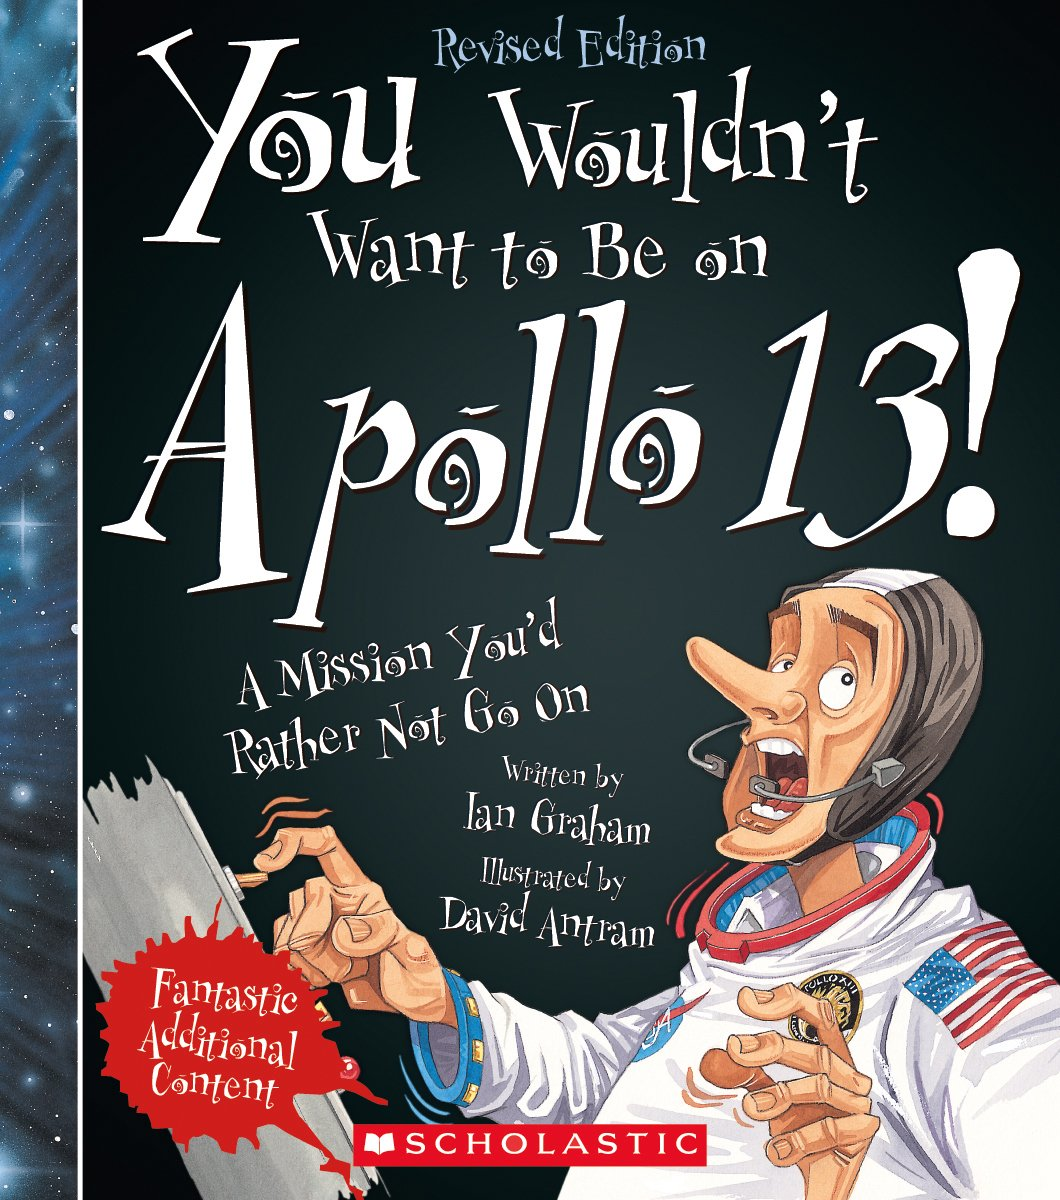 You Wouldn't Want to Be on Apollo 13!: A Mission You'd Rather Not Go on pdf epub